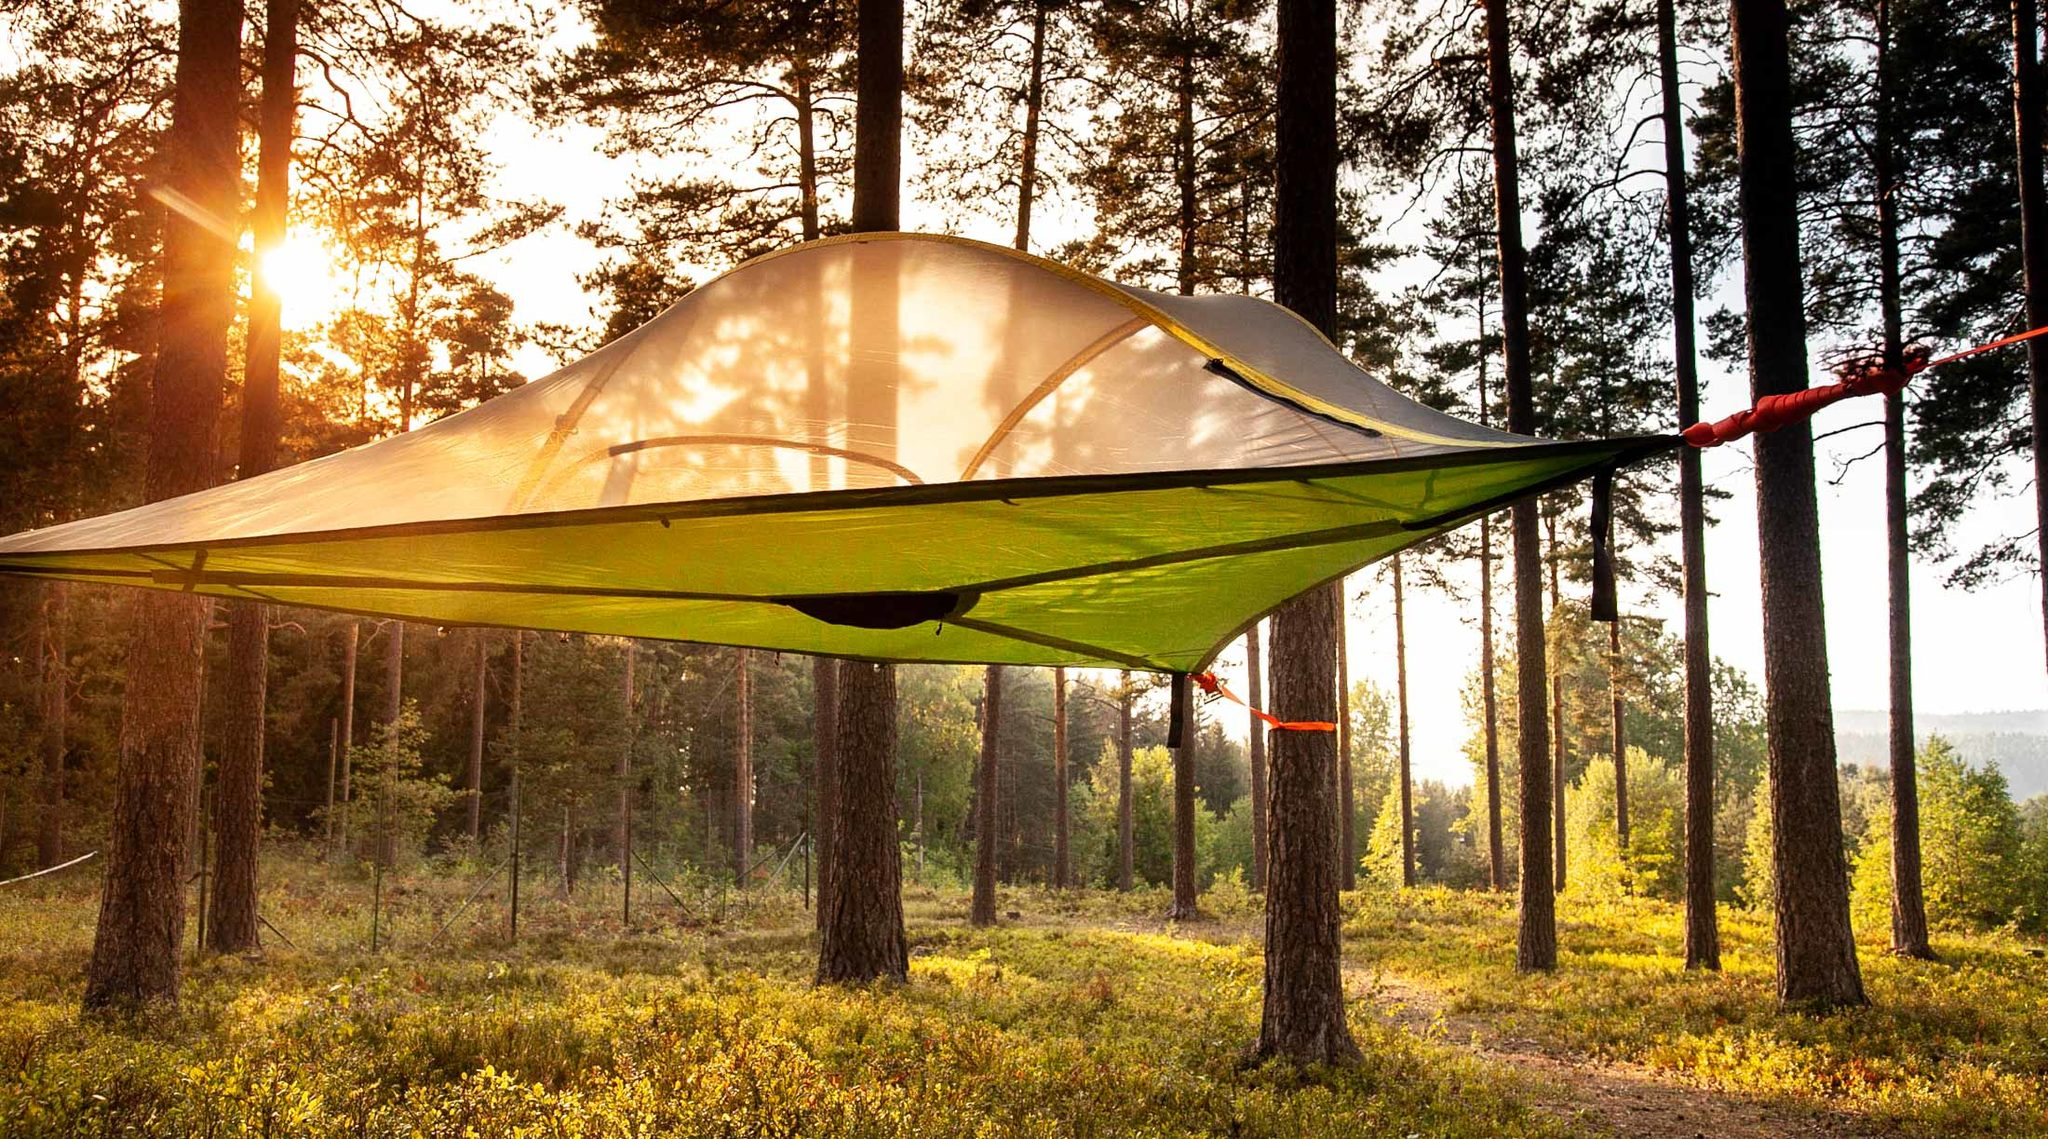 Skytent for two